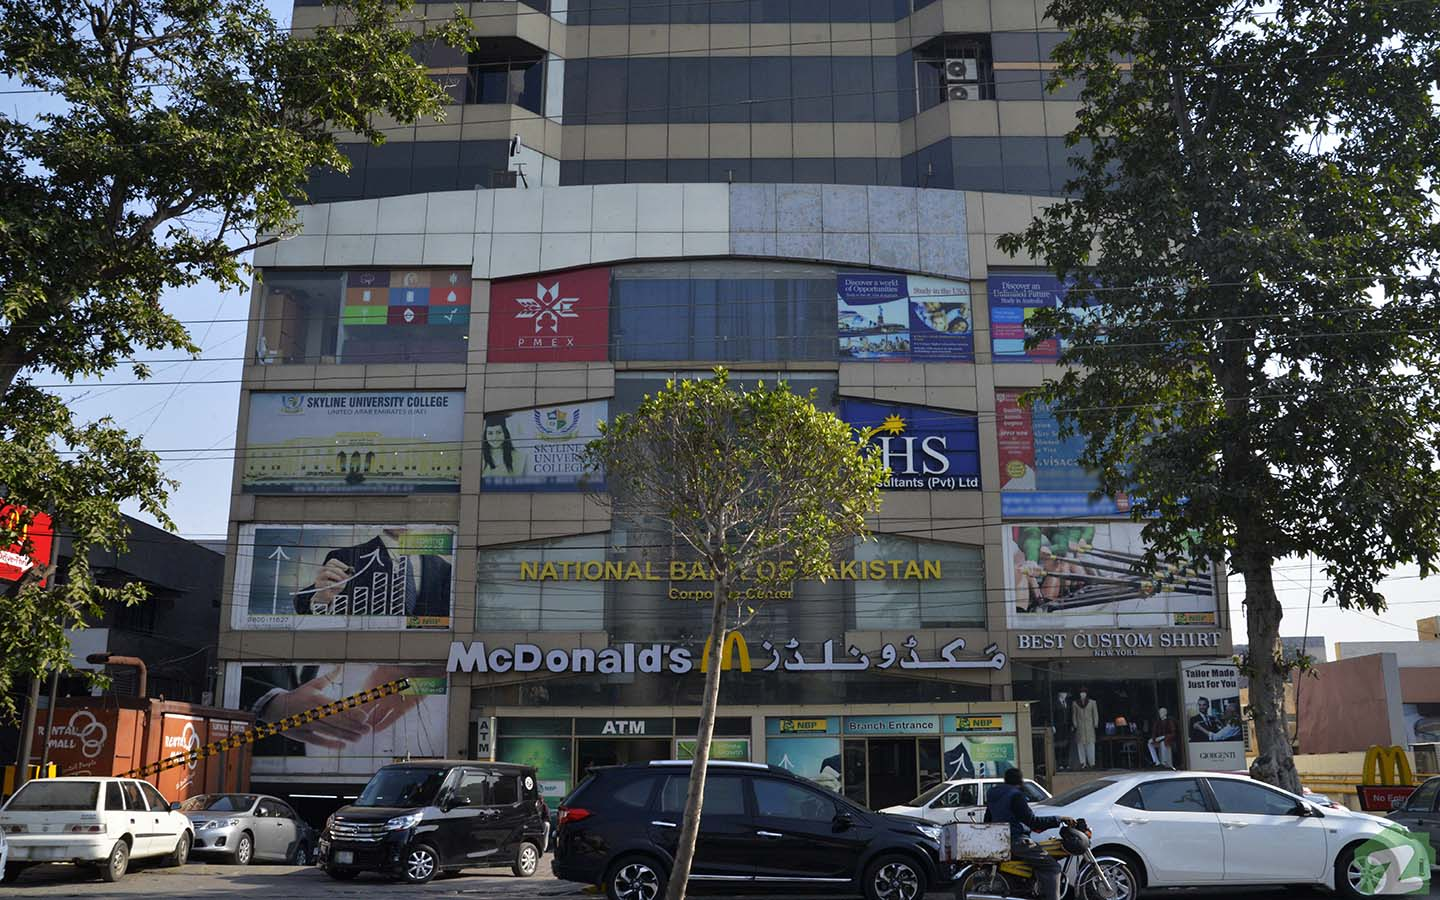 National Bank of Pakistan is quite popular in the area.